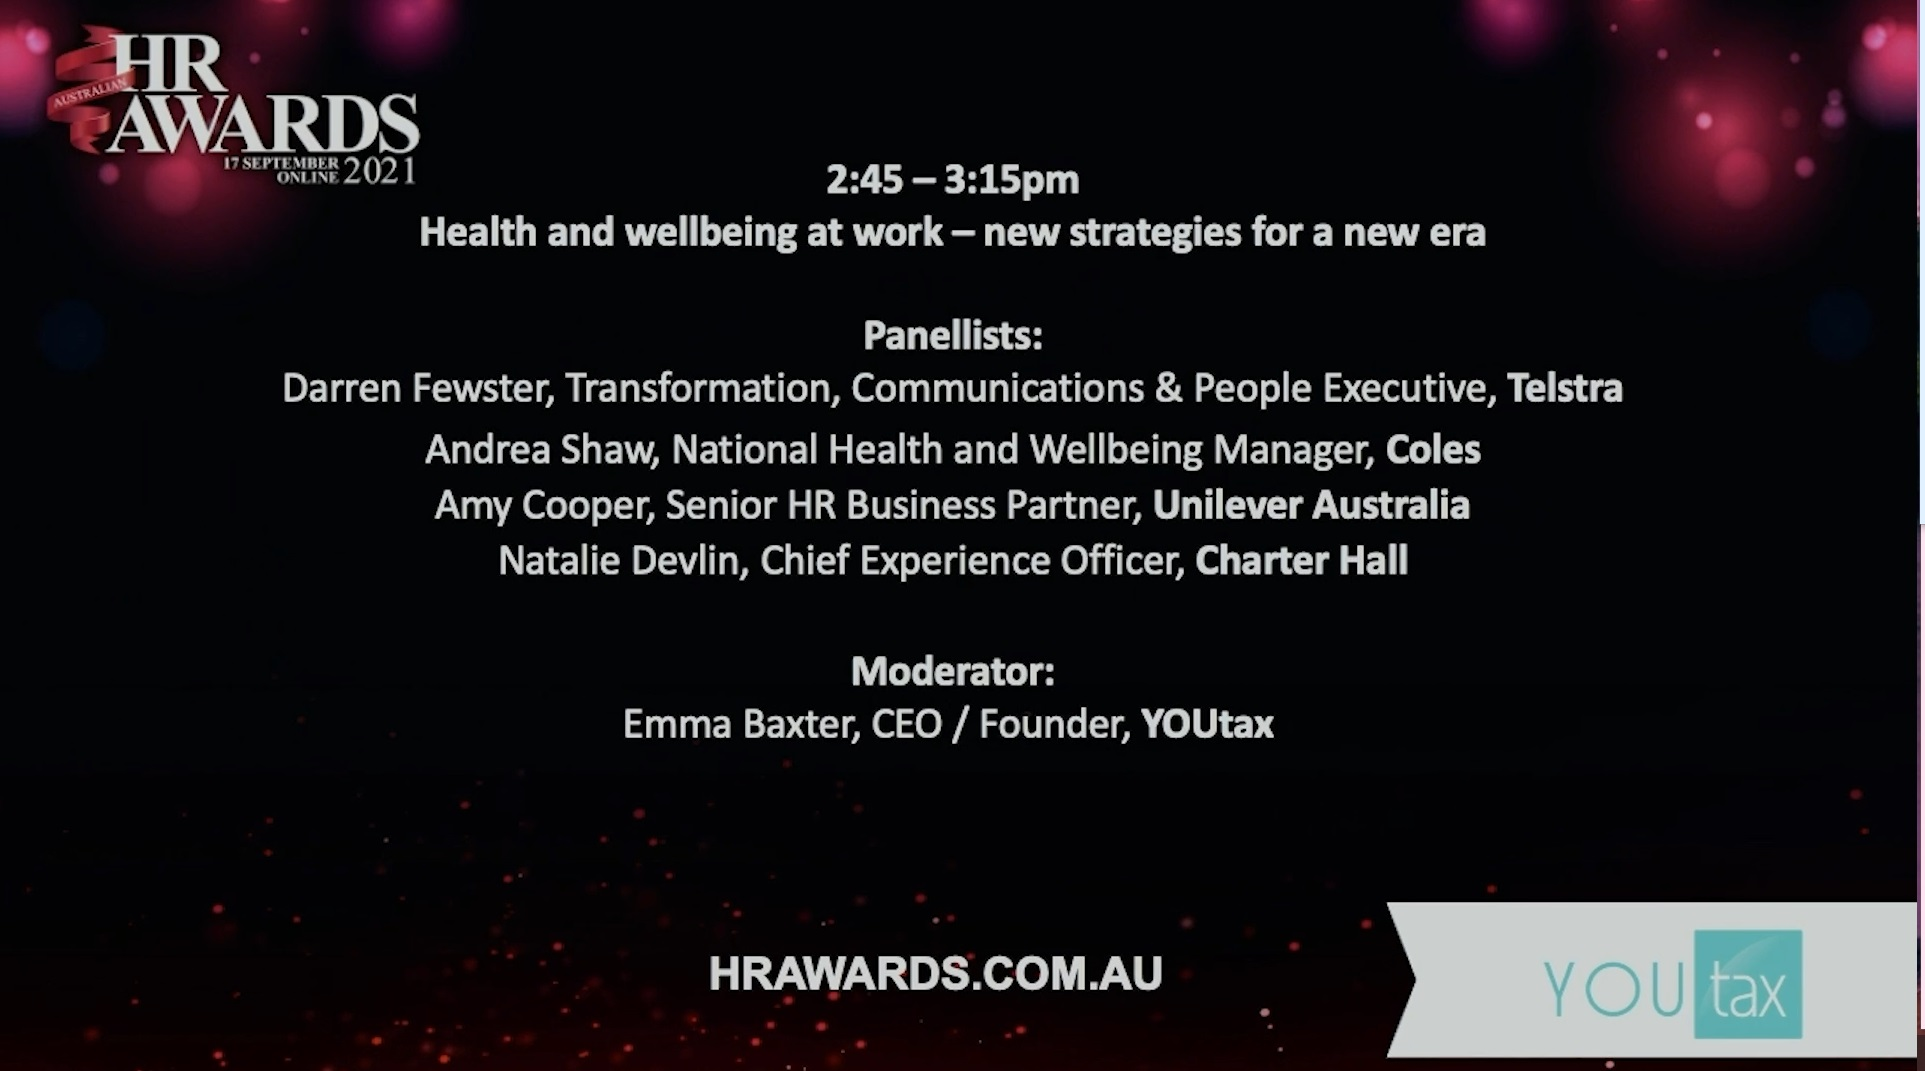 Health and wellbeing at work – new strategies for a new era